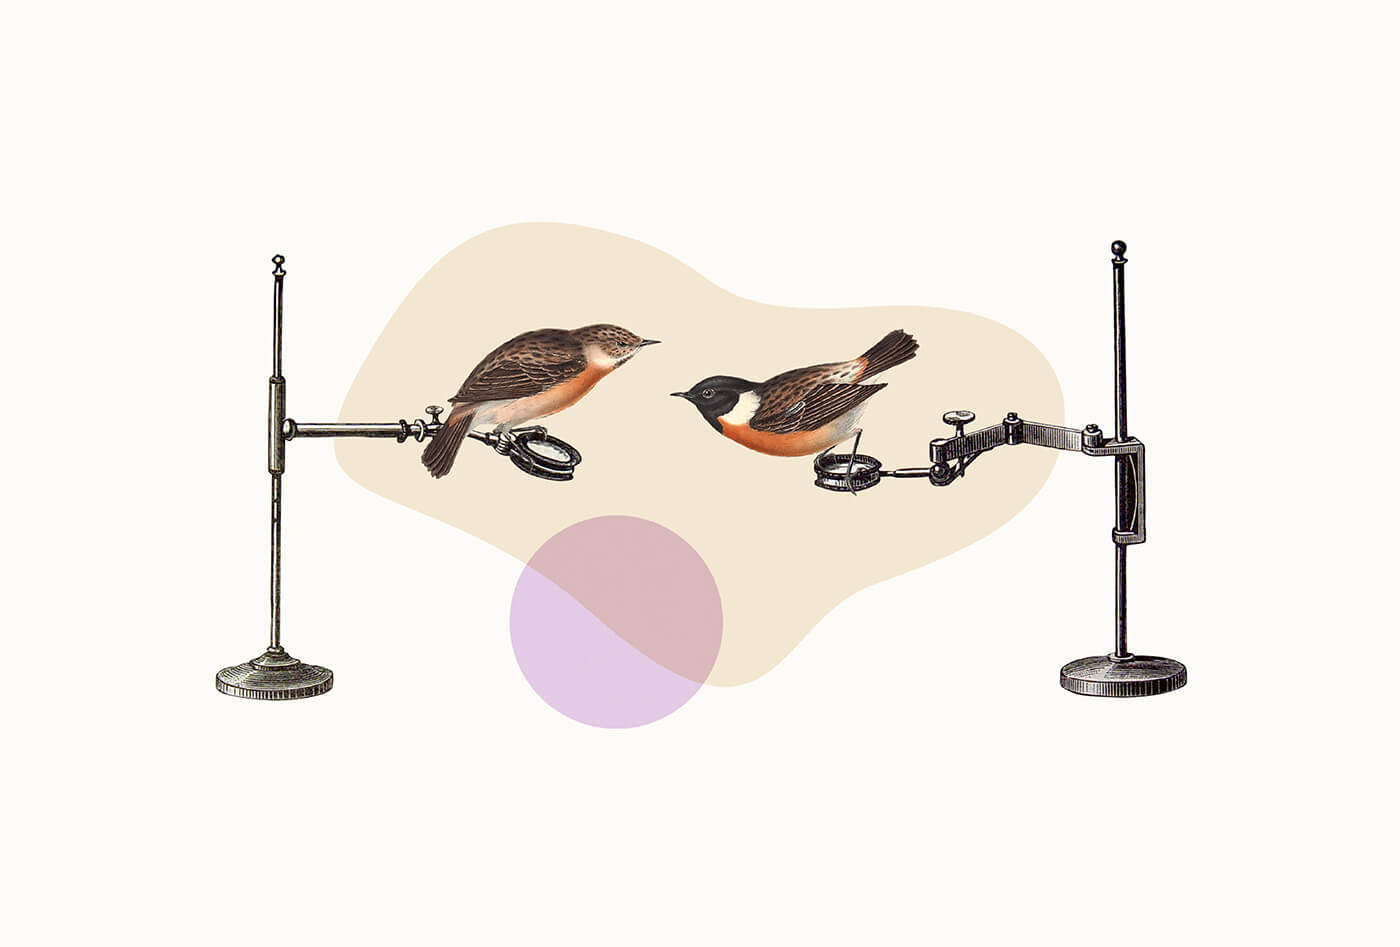 Brand identity collage using vintage illustrations showing two birds on scientific equipment